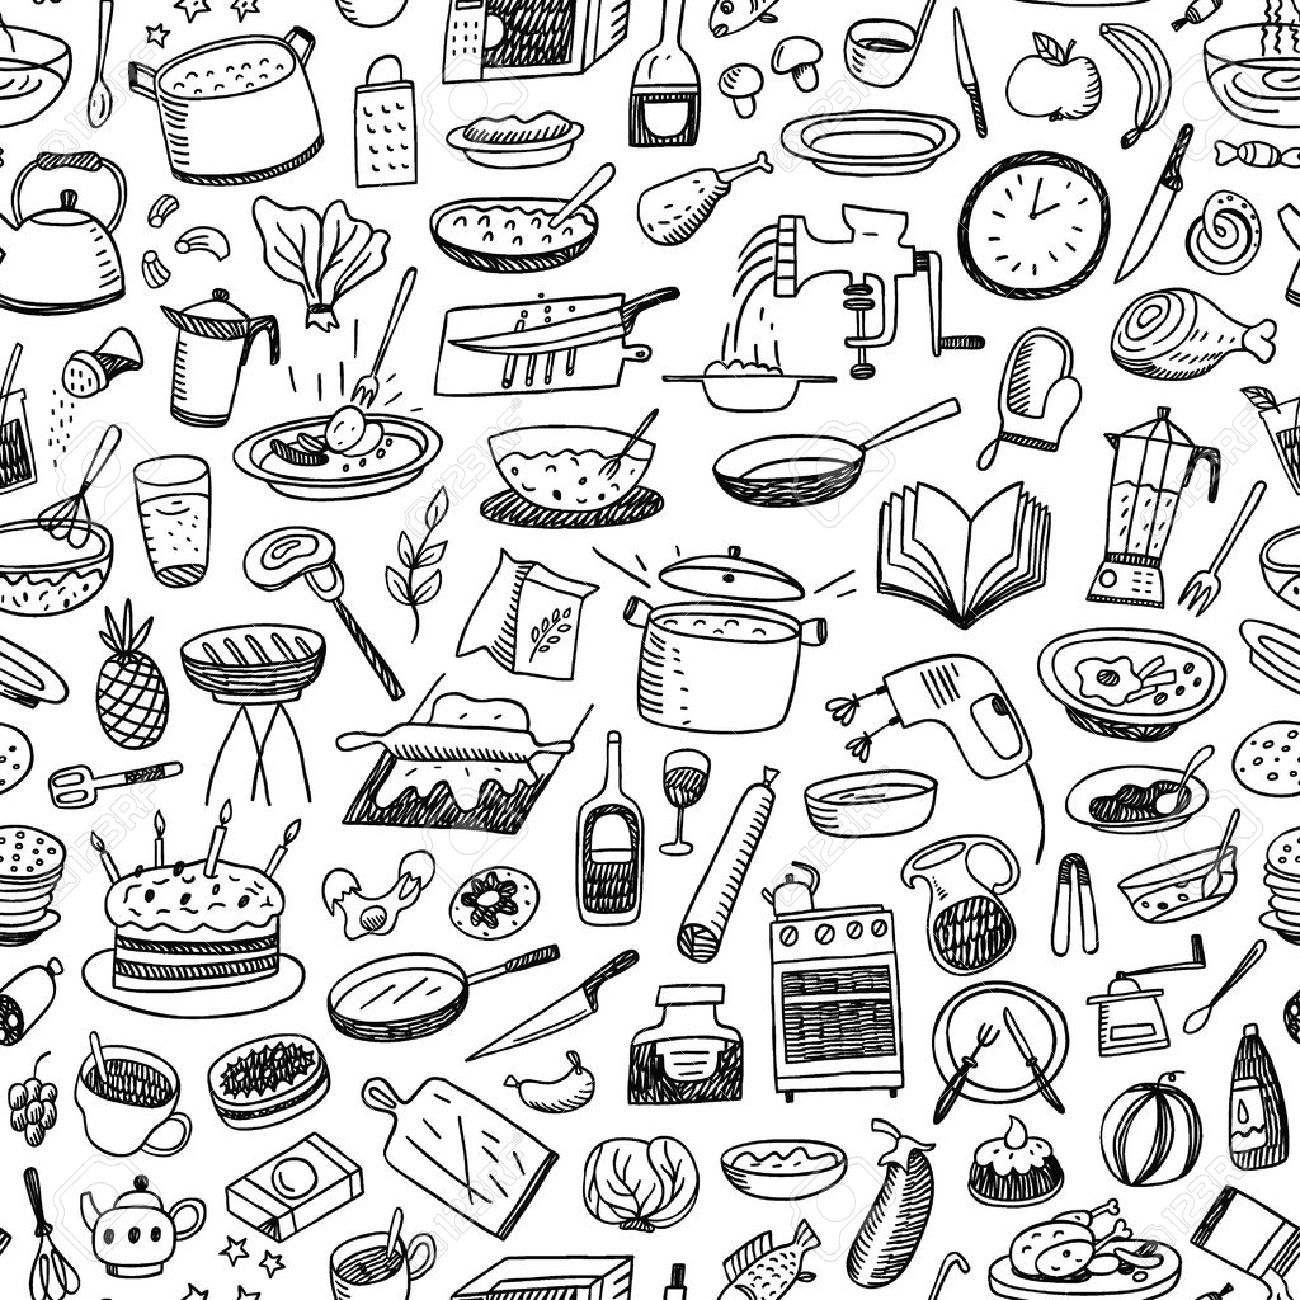 Cookery Natural Food Seamless Pattern With Icons In Sketch Style Aff Food Seamless Cookery Natu Seamless Background Illustration Free Vector Art